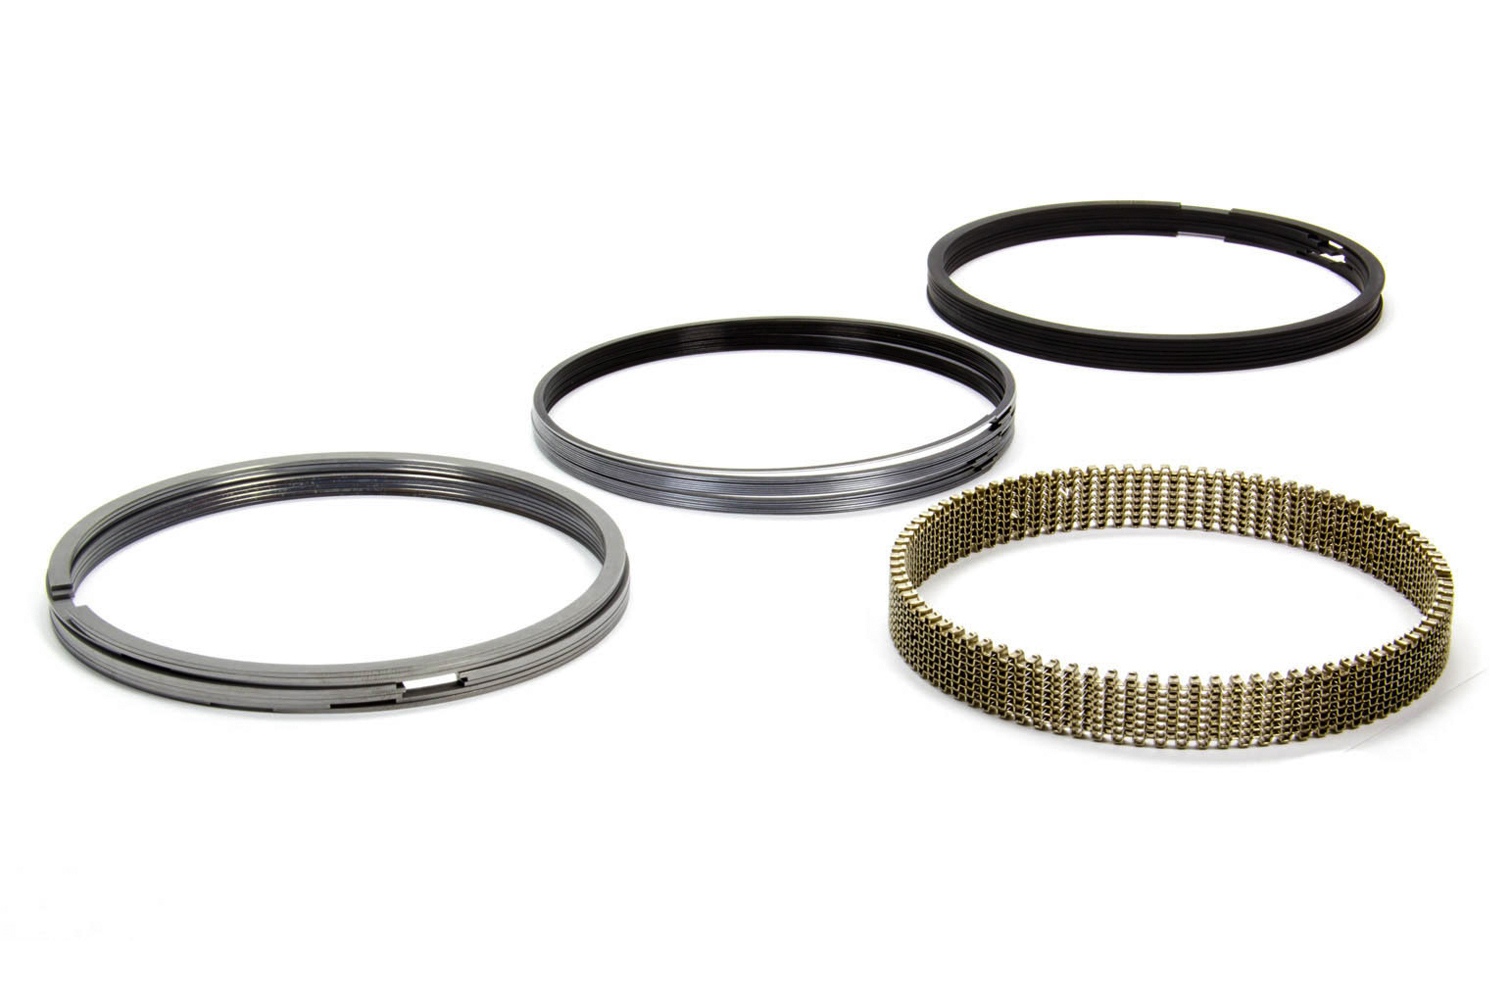 Total Seal CS2012-5 Piston Rings, 4.130 in Bore, 1.5 x 1.5 x 3.0 in Thick, Standard Tension, 8-Cylinder, Kit